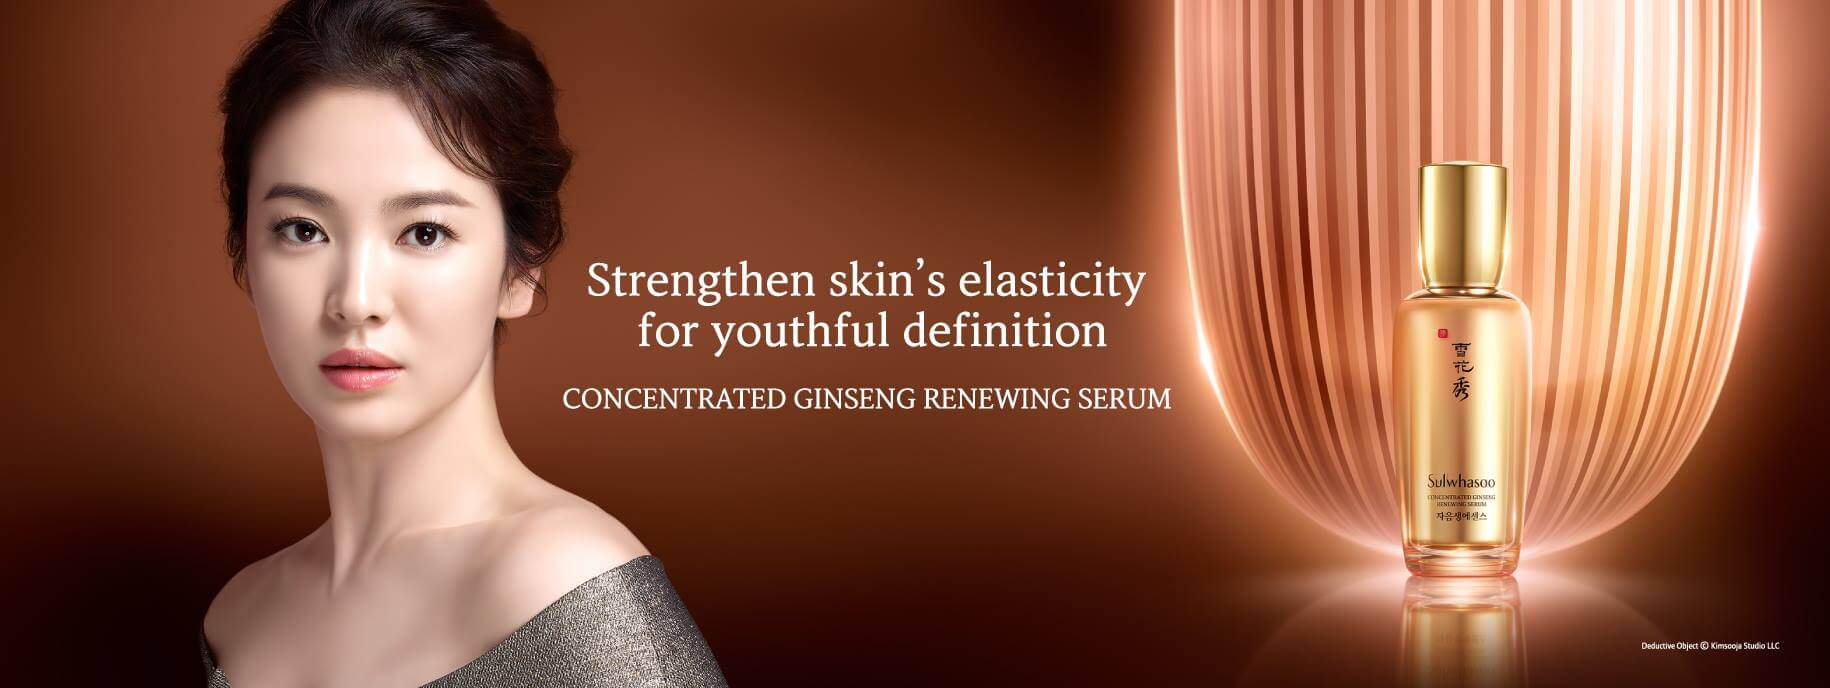 Sulwhasoo,Concentrated Ginseng Renewing Serum 8ml,Sulwhasoo Concentrated Ginseng Renewing Serum,Sulwhasoo Concentrated Ginseng Renewing Serum รีวิว,เซรั่มแคปซูลโสม,